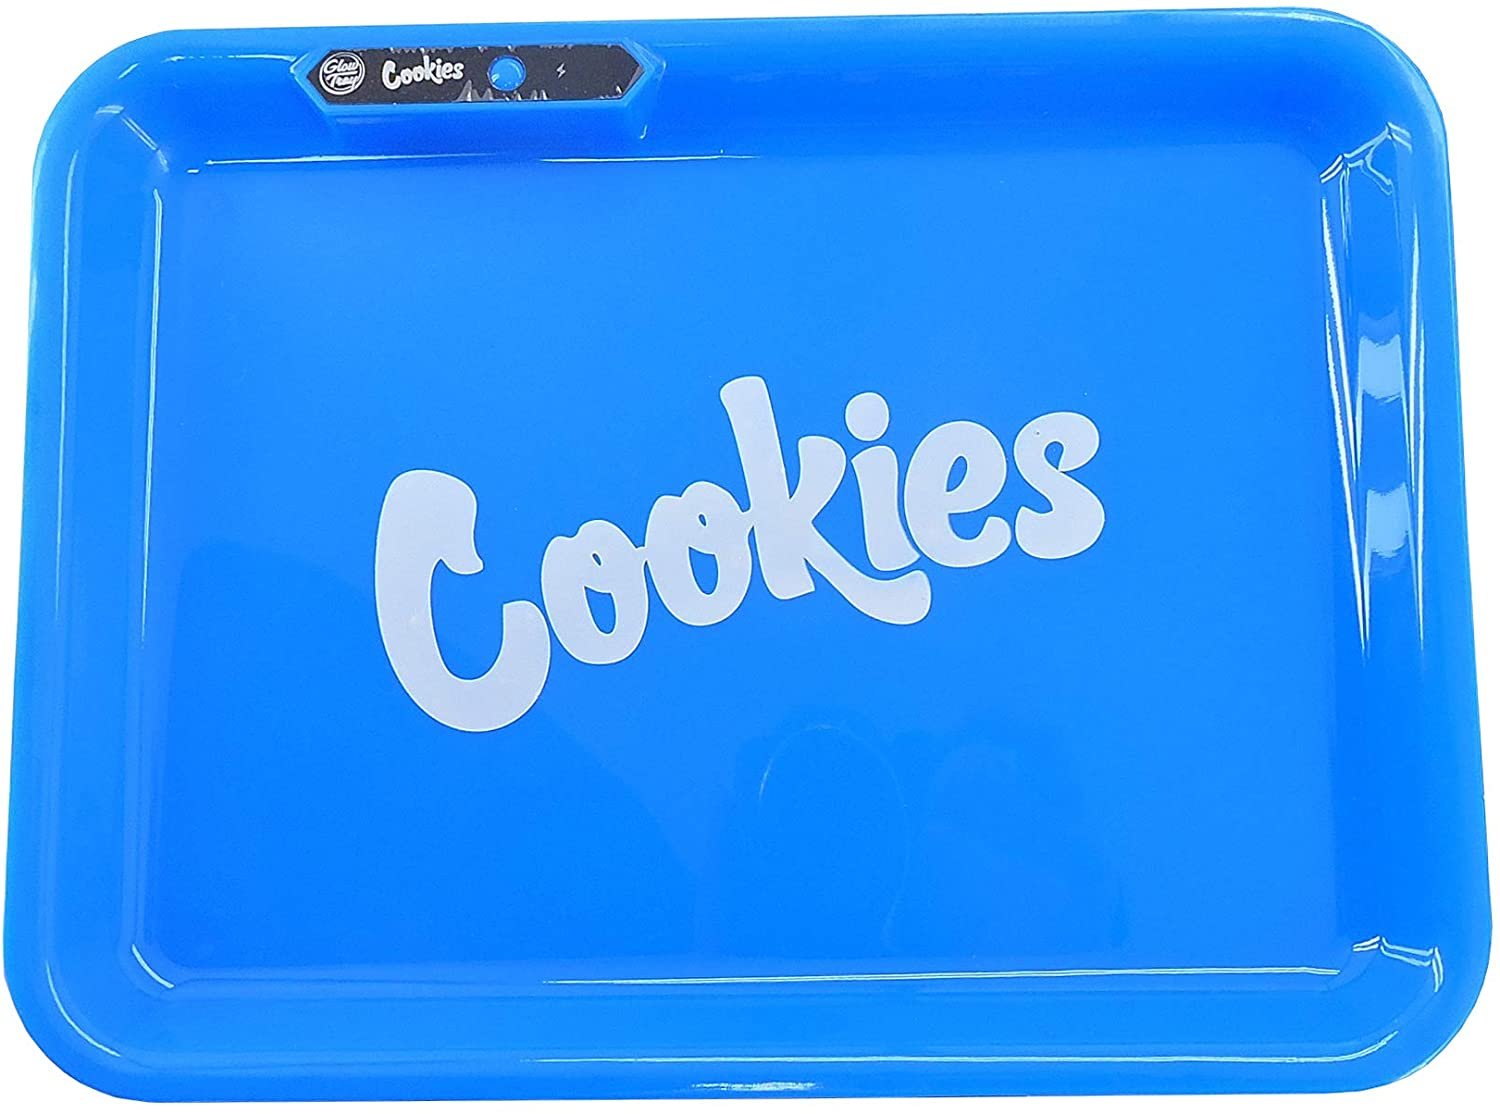 Glow Tray X Cookies Blue Led Rolling Tray By Glow Tray